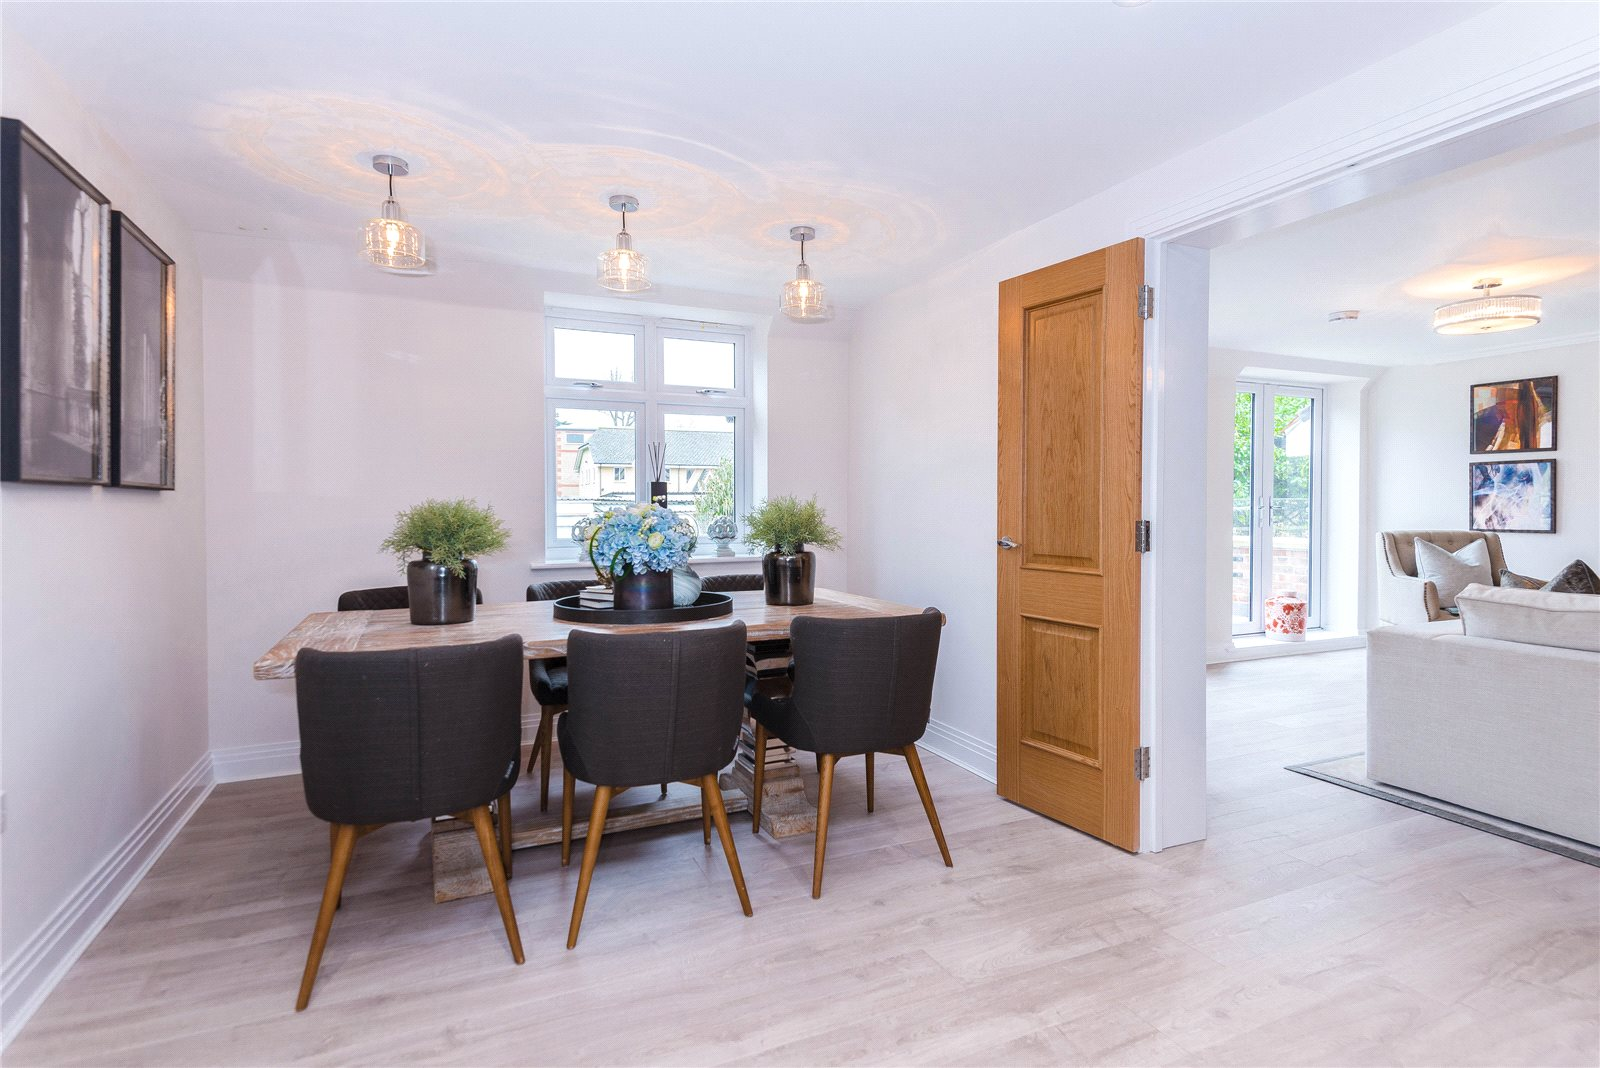 Additional photo for property listing at Scholars Place, South Park Drive, Gerrards Cross, Buckinghamshire, SL9 Gerrards Cross, Inghilterra